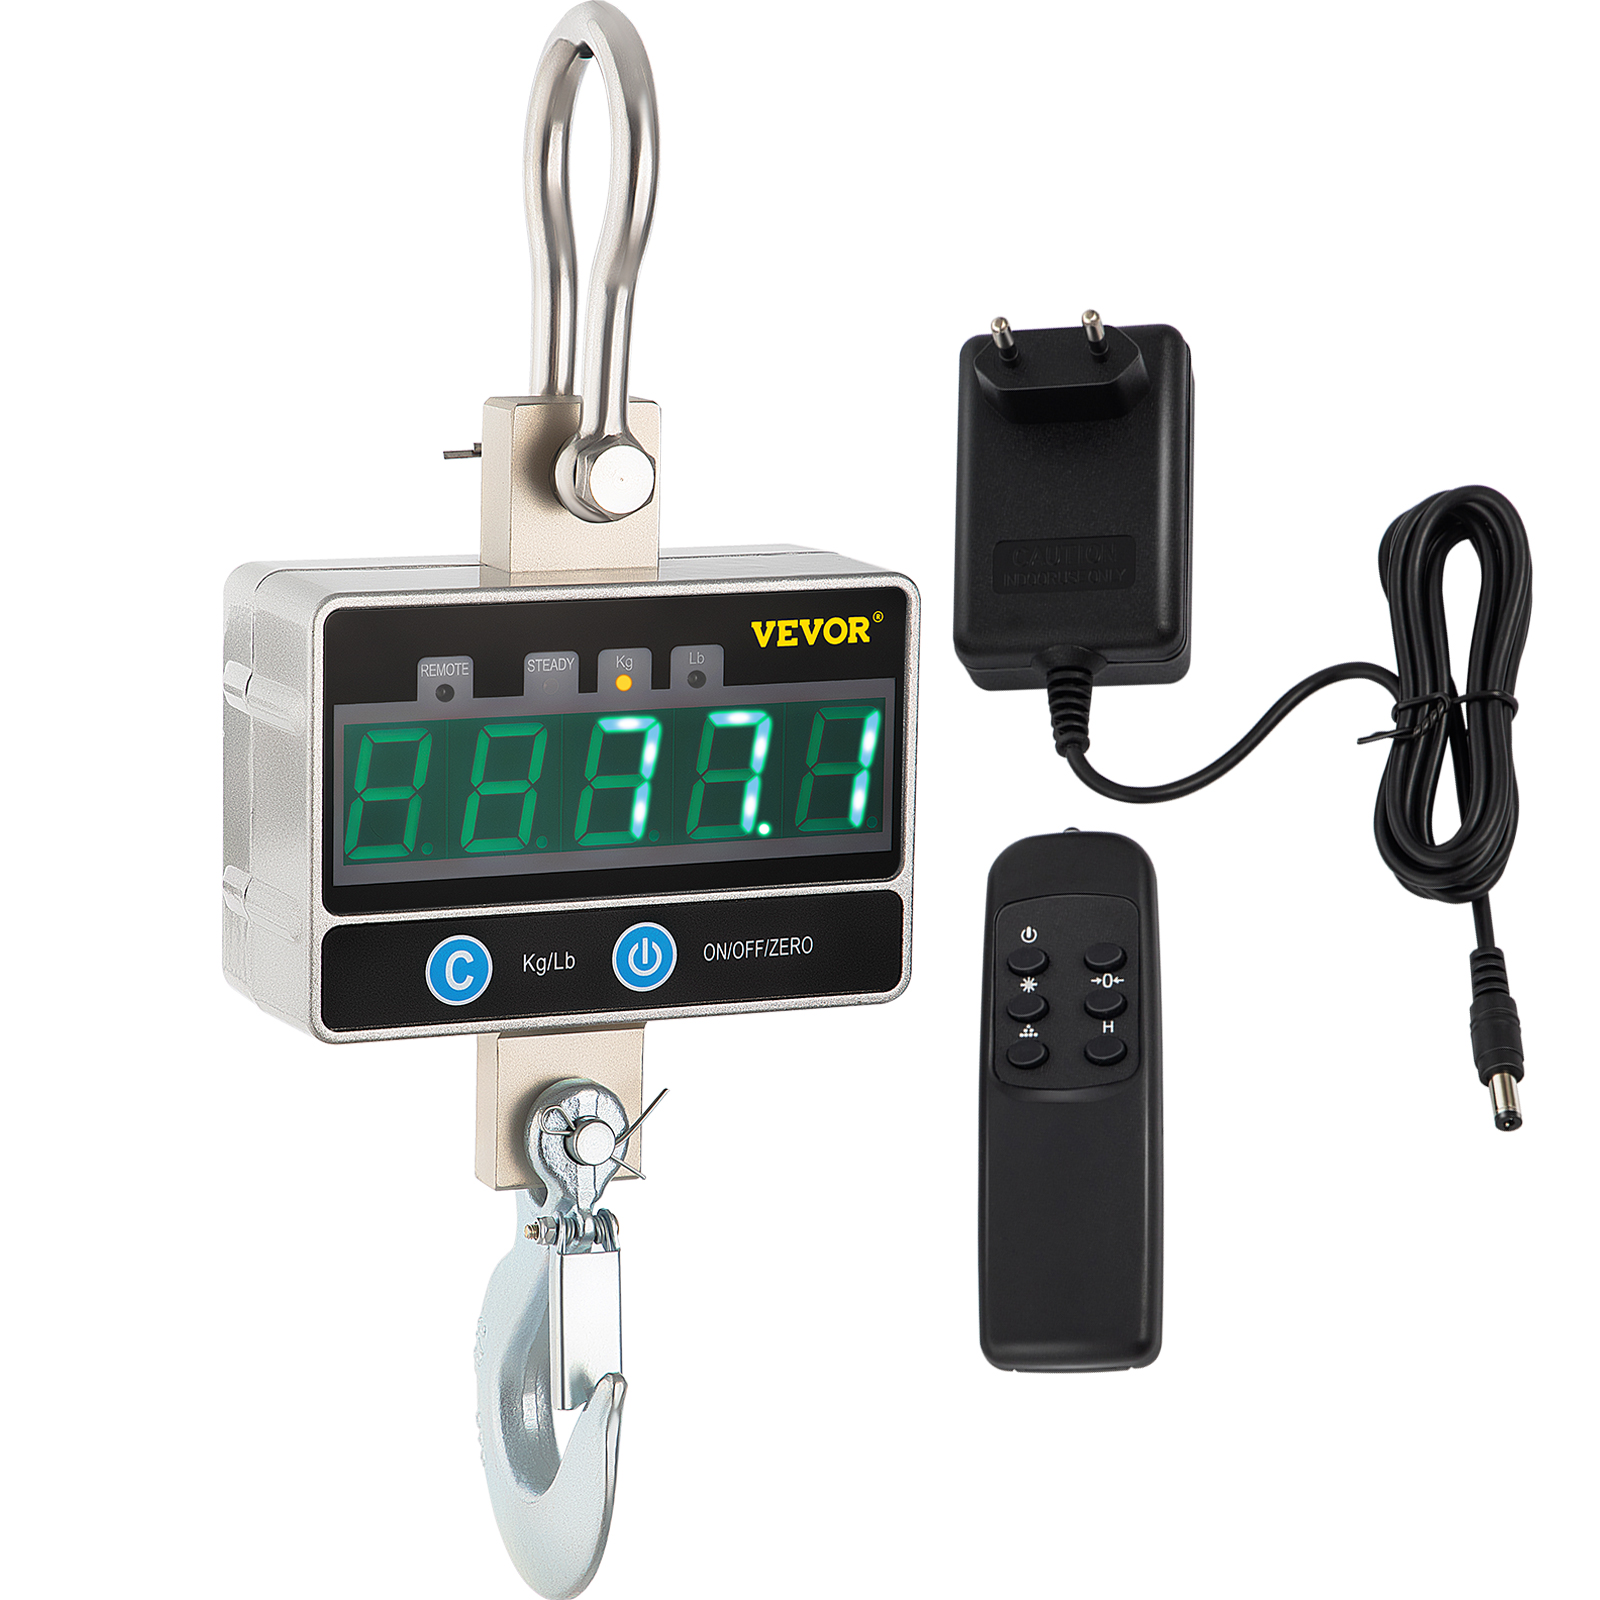 Bonvoisin Digital Crane Scale 1000kg//2000lb Industrial Heavy Duty Hanging Scale with Remote Control Portable Electronic Weighing Crane Scale 5-Digit LED Display CE Certified 1000kg, Orange